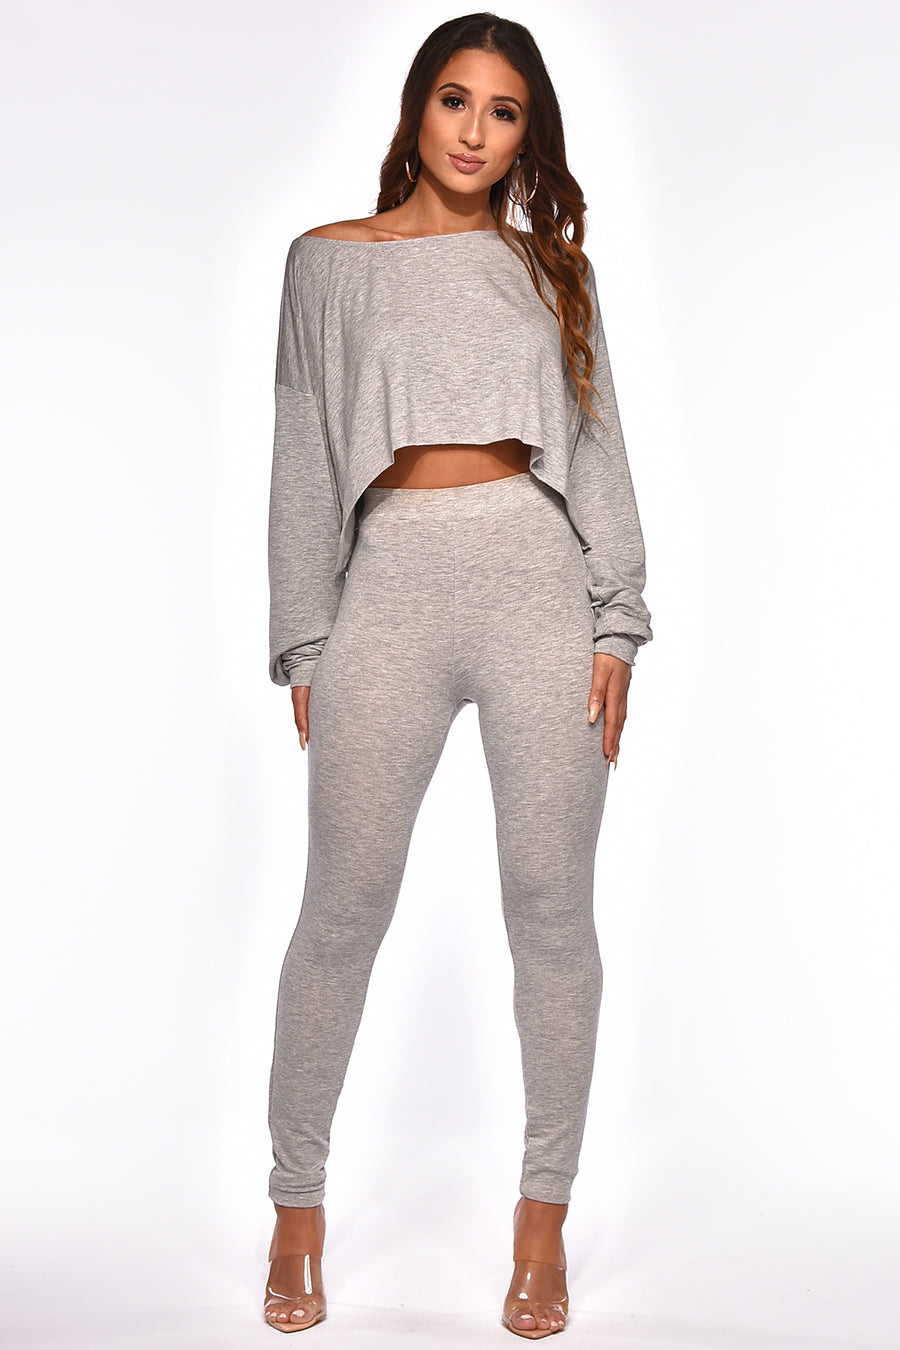 KEEP ME WARM PANT SET